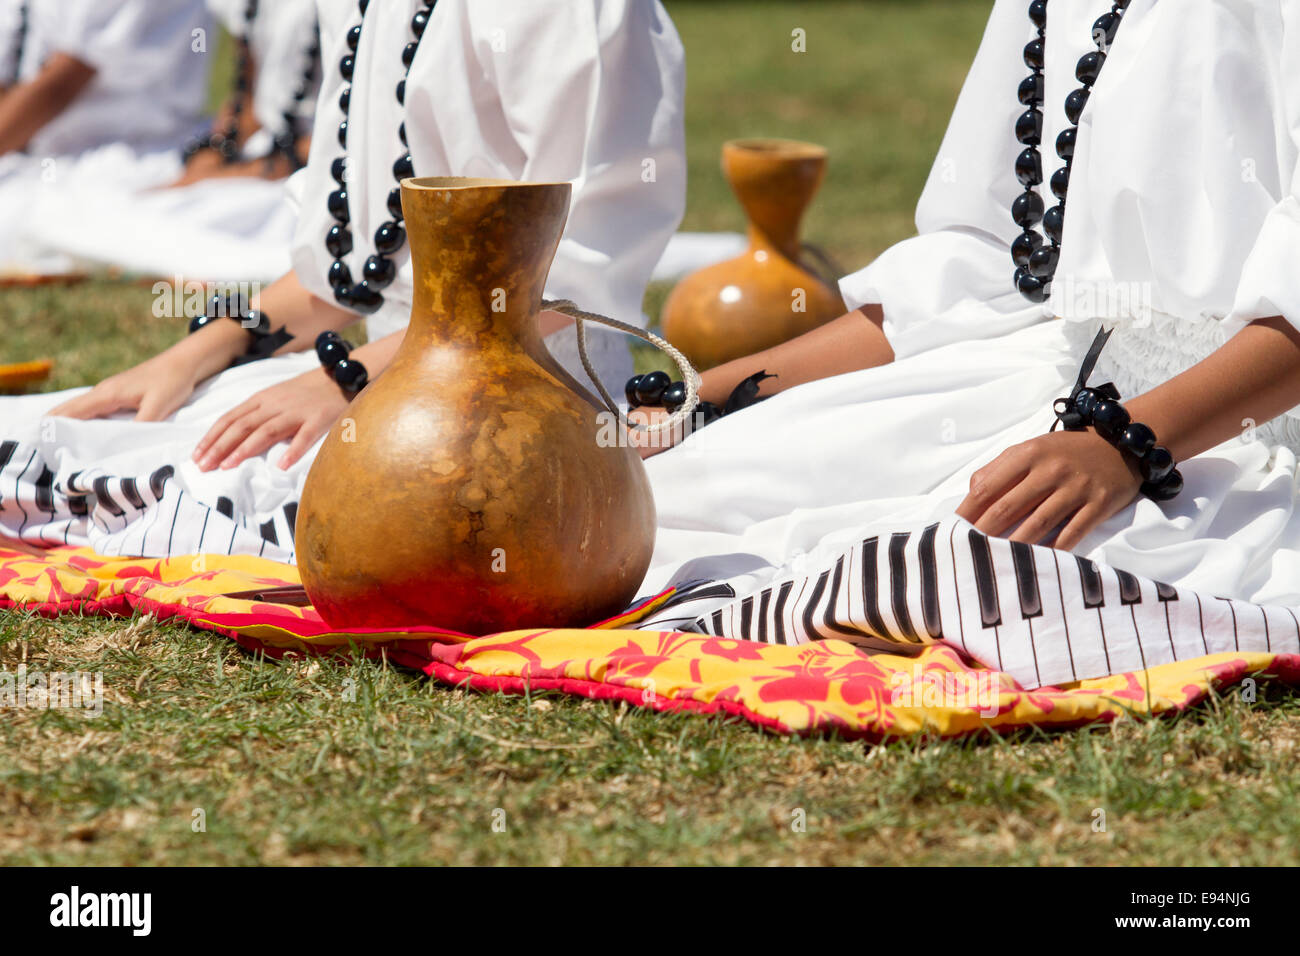 Hawaiian dancers sitting next to Hawaiian gourds - Stock Image